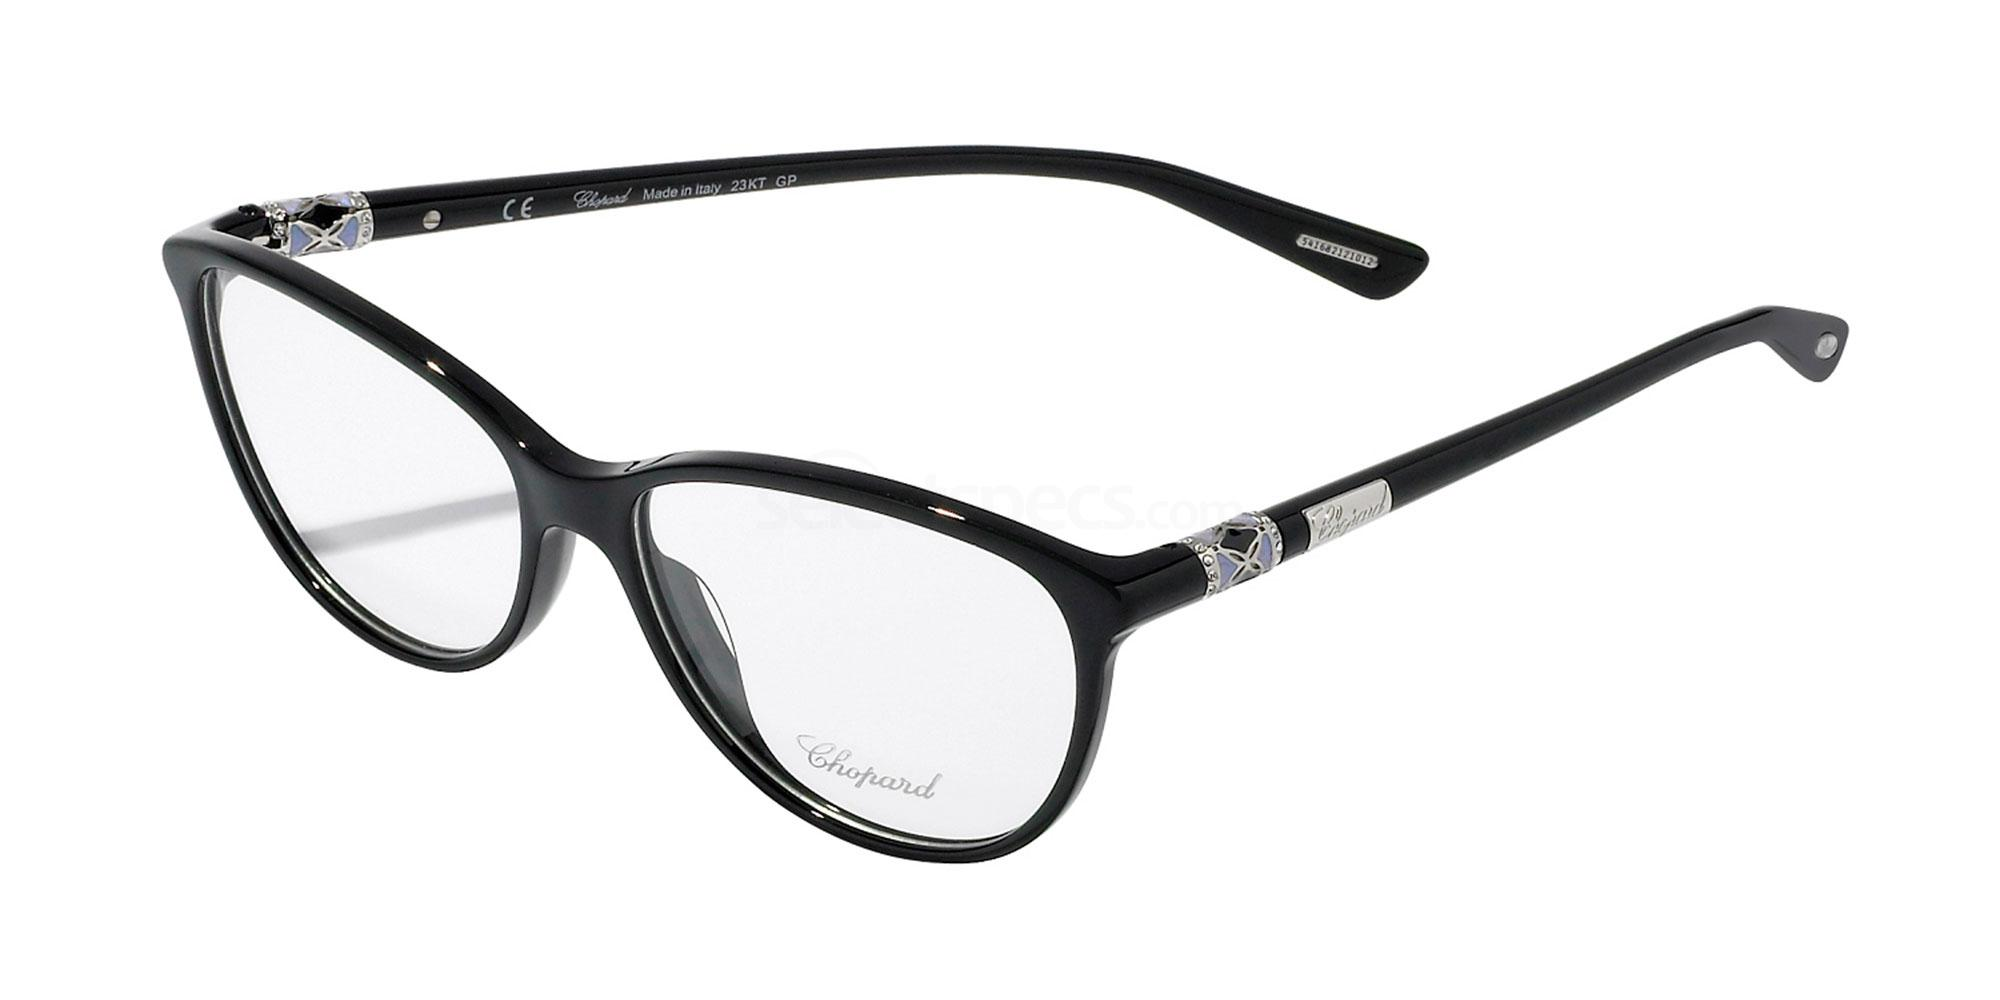 0700 VCH199S Glasses, Chopard